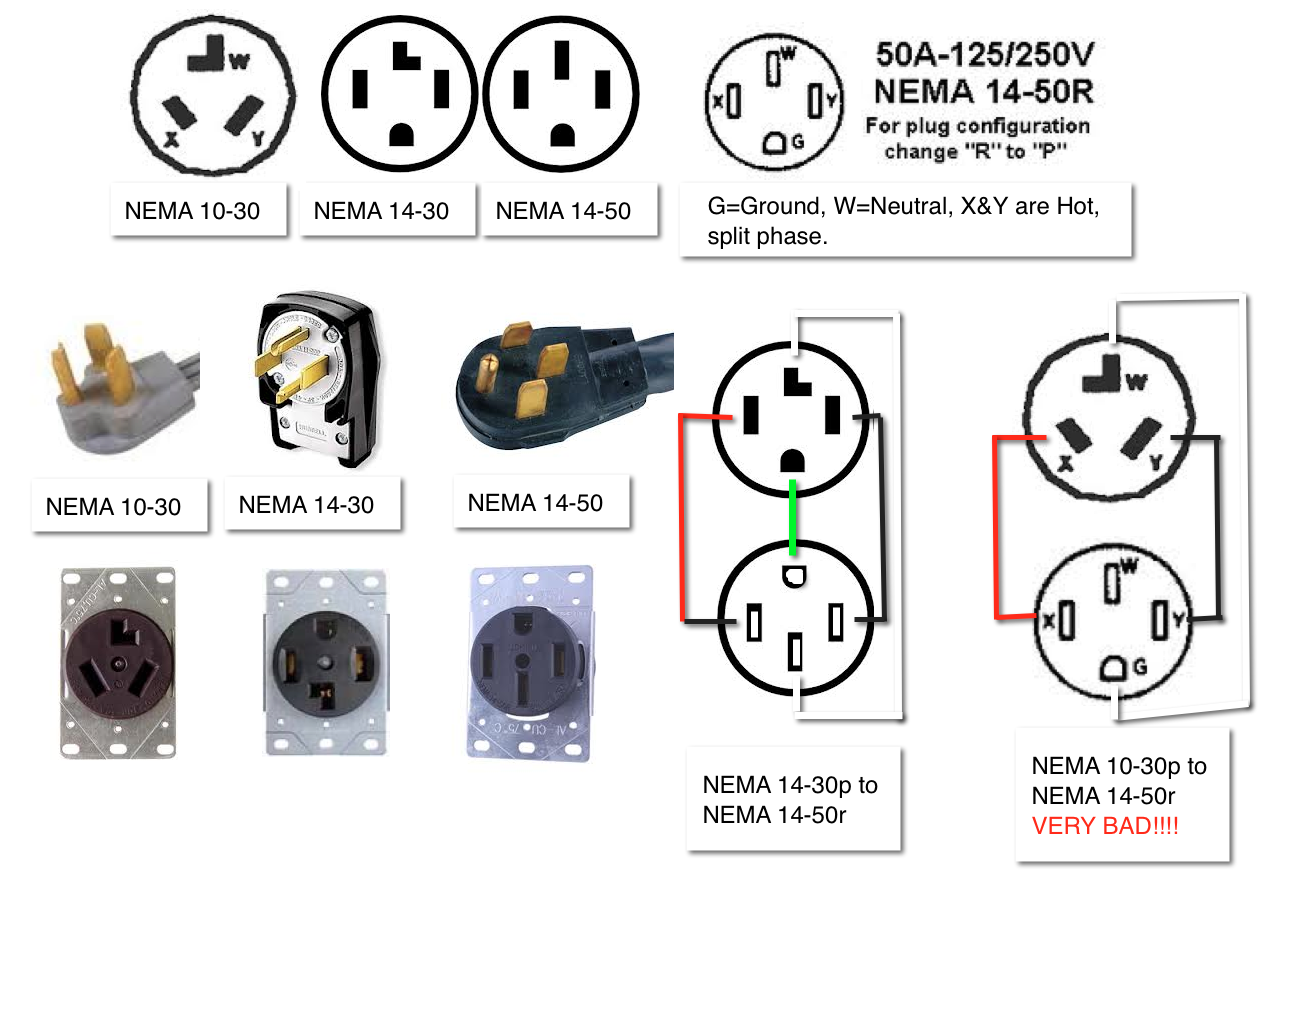 1*R2rsS8MMOiVwm86jrHzveg what should you know before you buy a tesla george everitt medium nema 14-50 outlet wiring diagram at readyjetset.co